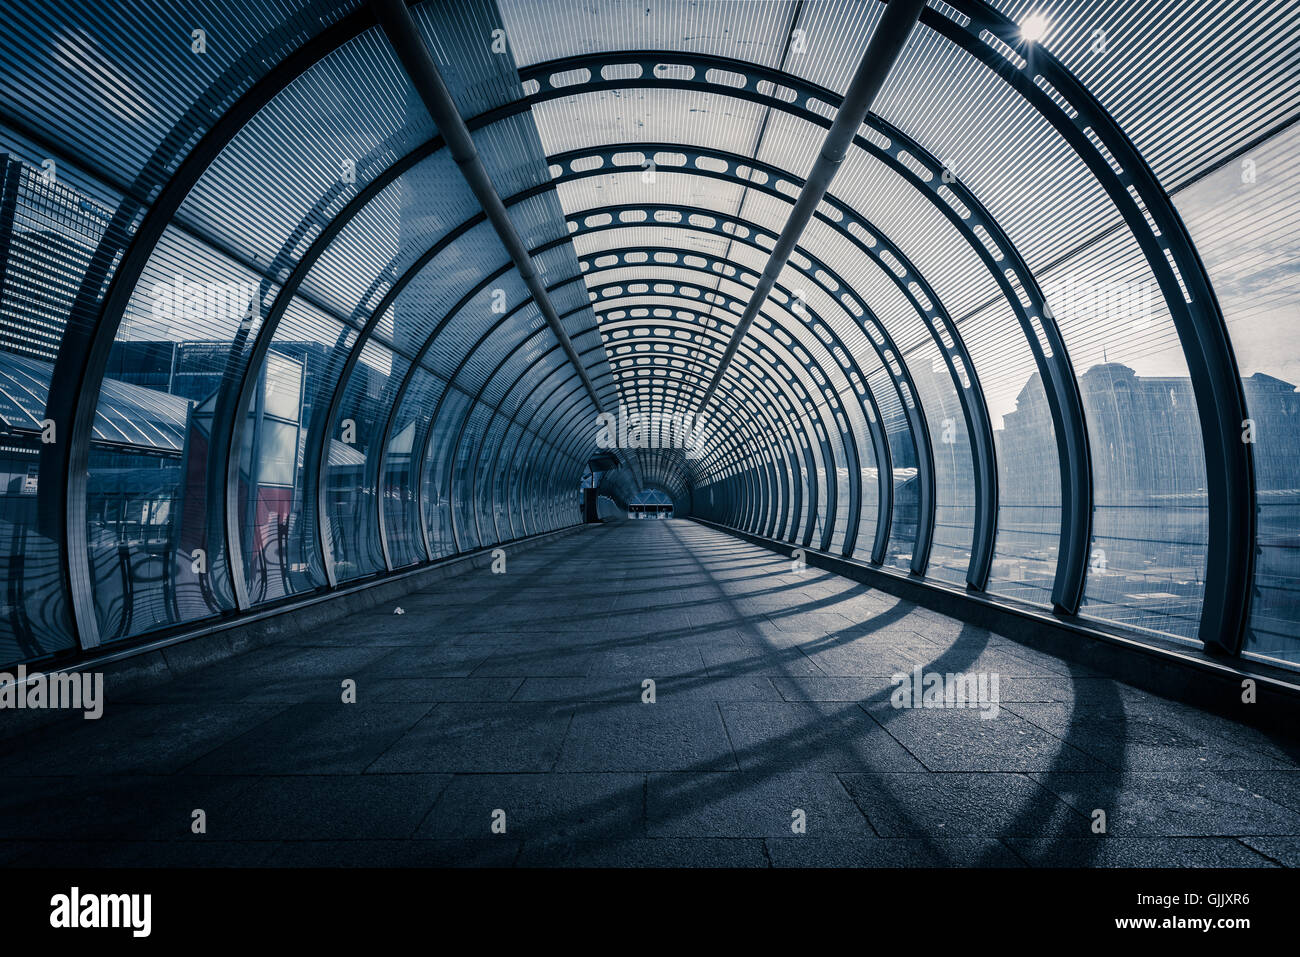 Poplar tunnel / walkway at DLR Docklands Light Railway station, London, United Kingdom - Stock Image